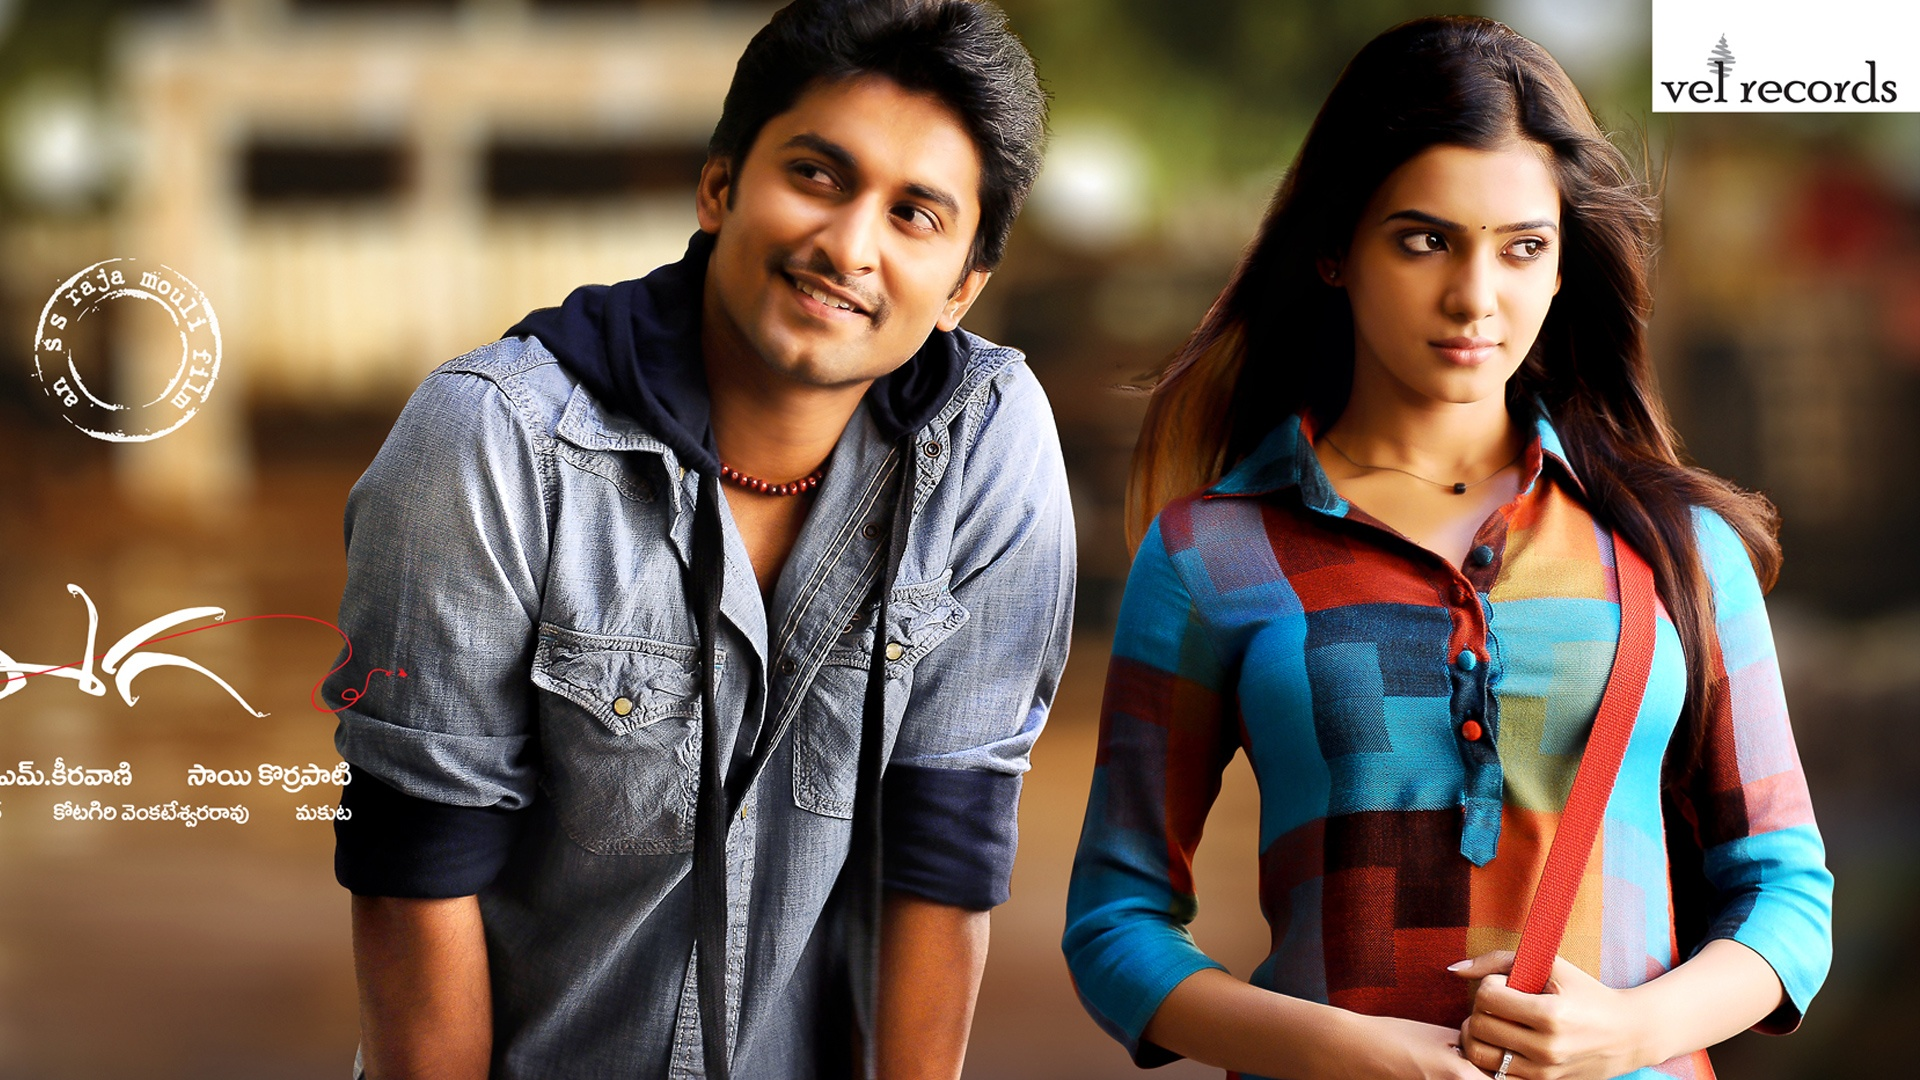 Animated Nature Wallpapers Free Download Nani Samantha In Eega Movie Wallpapers In Jpg Format For